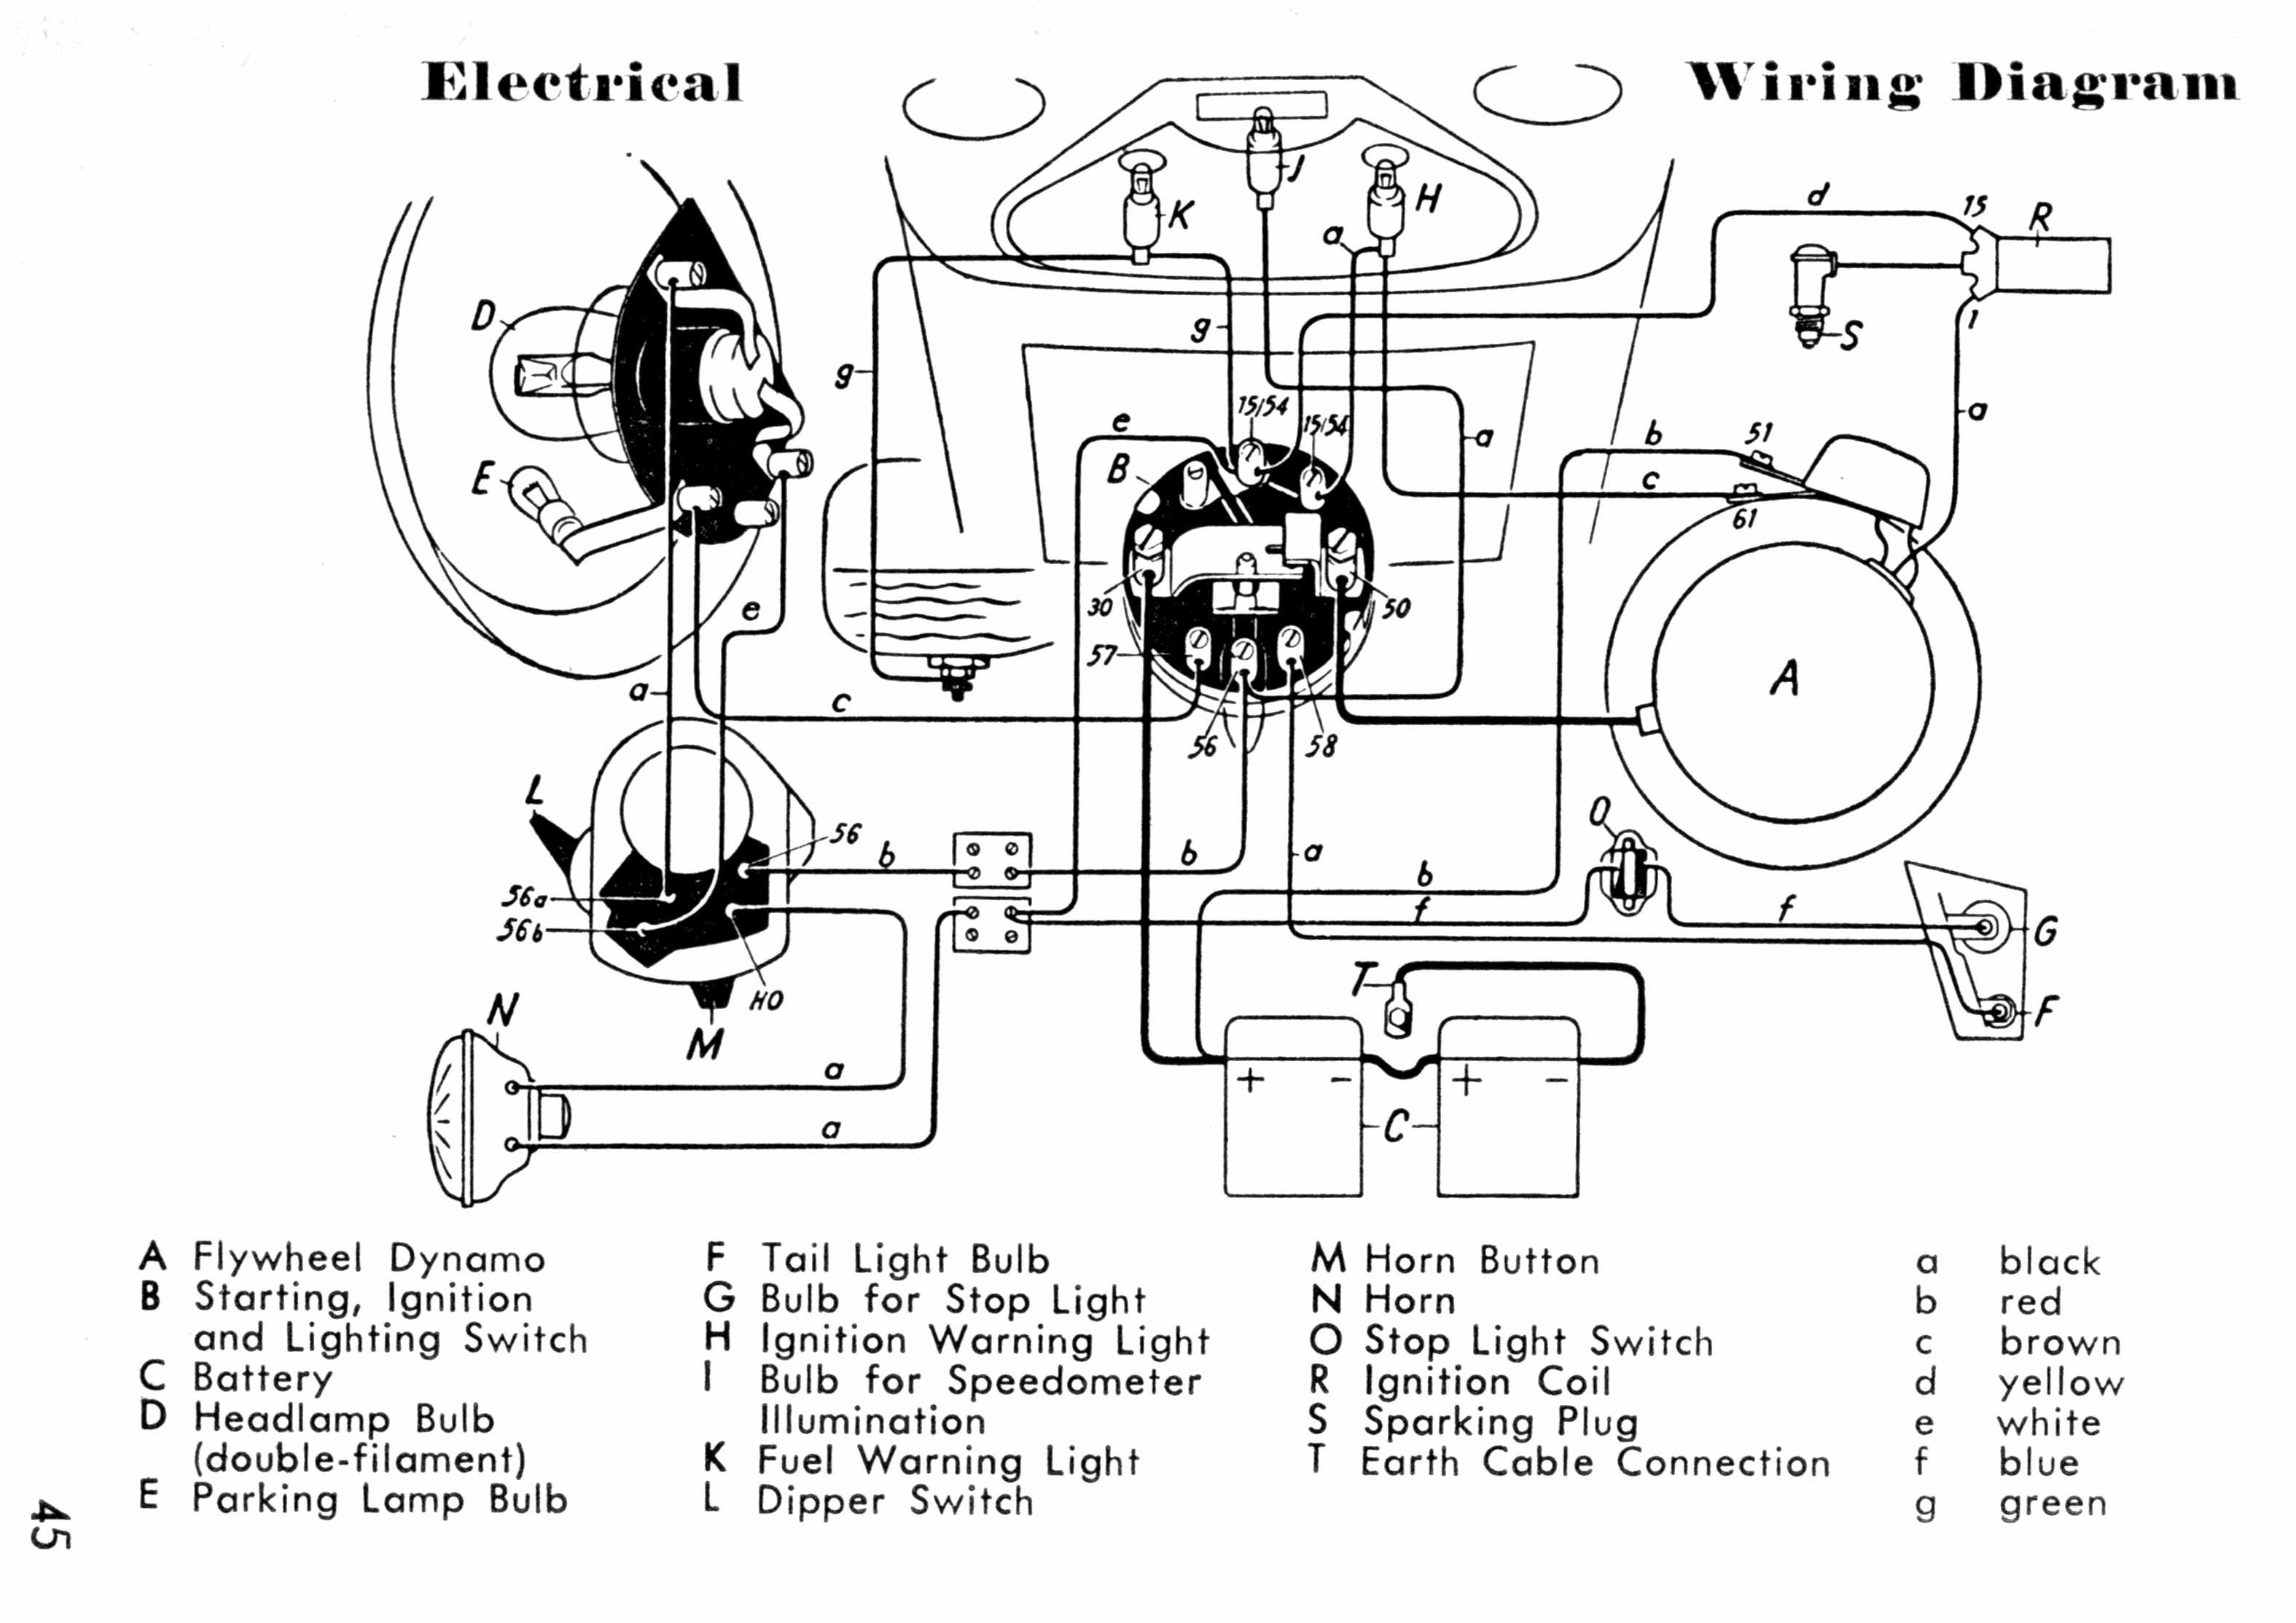 small resolution of 50cc motorcycle engine diagram motor repalcement parts and diagramschematic electric scooter wiring diagram closet electric 50cc